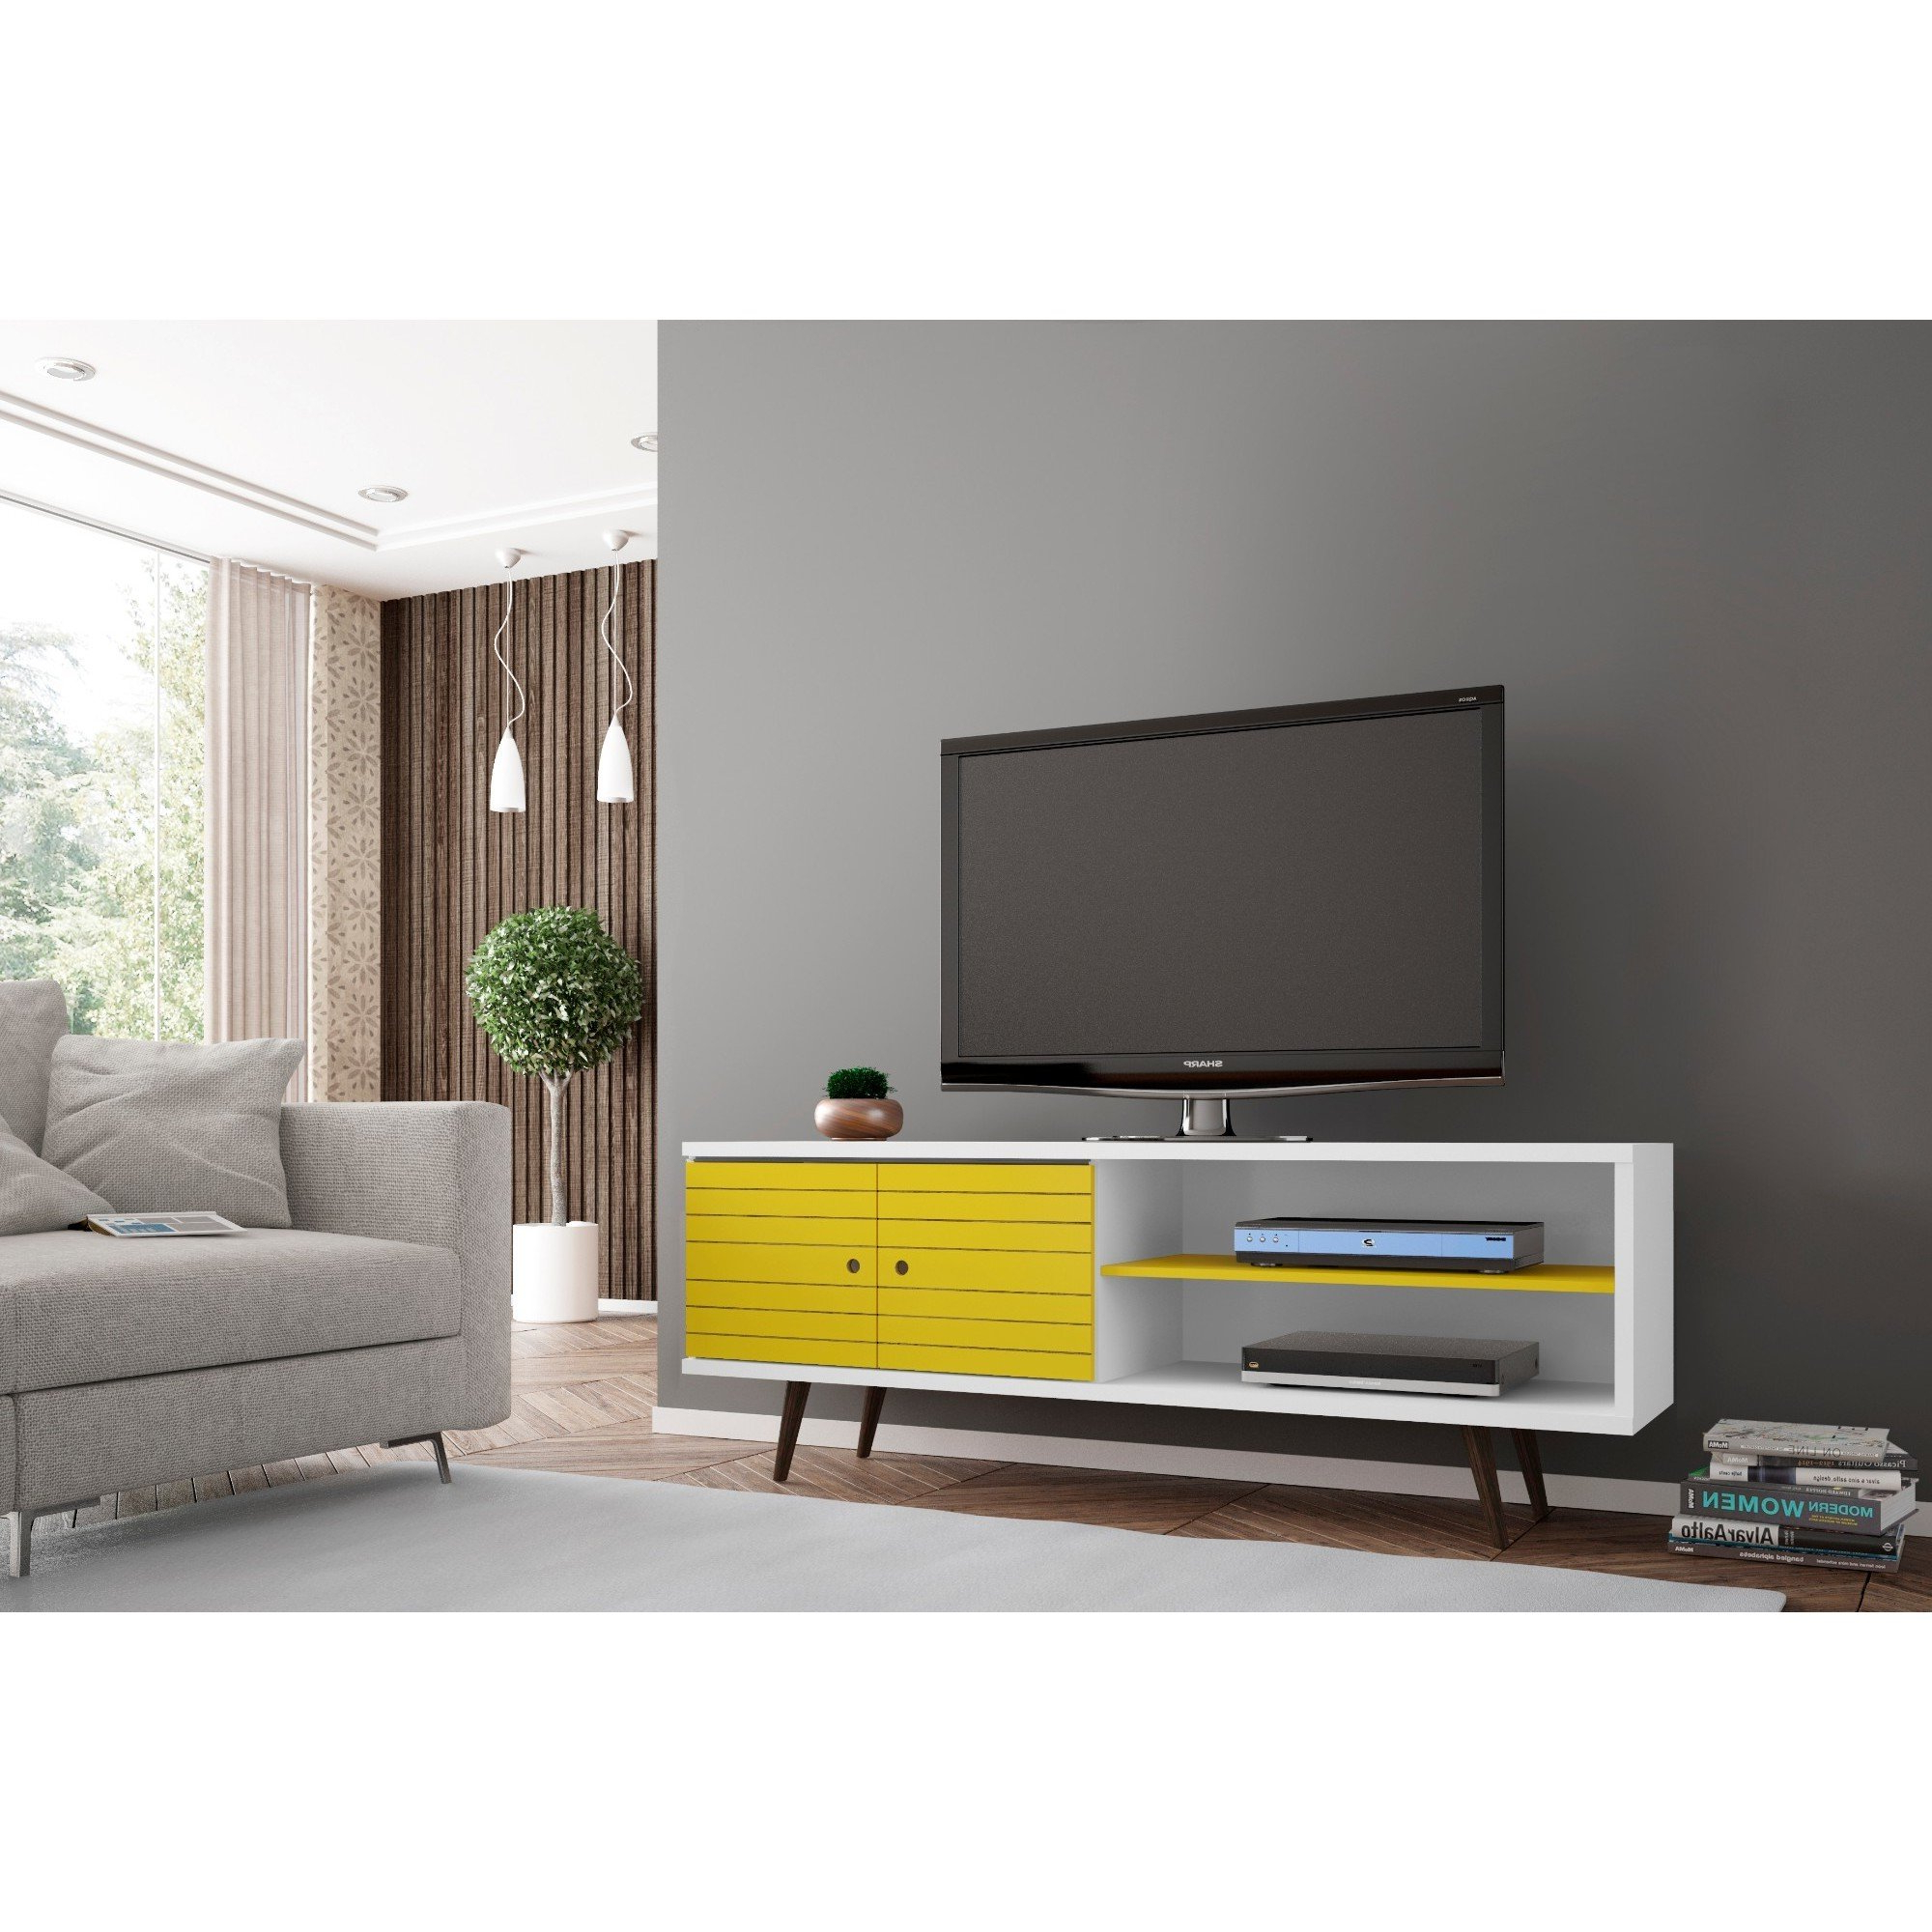 Shop Carson Carrington Sortland Wooden Modern Tv Stand – On Sale Pertaining To Canyon 64 Inch Tv Stands (Gallery 13 of 20)